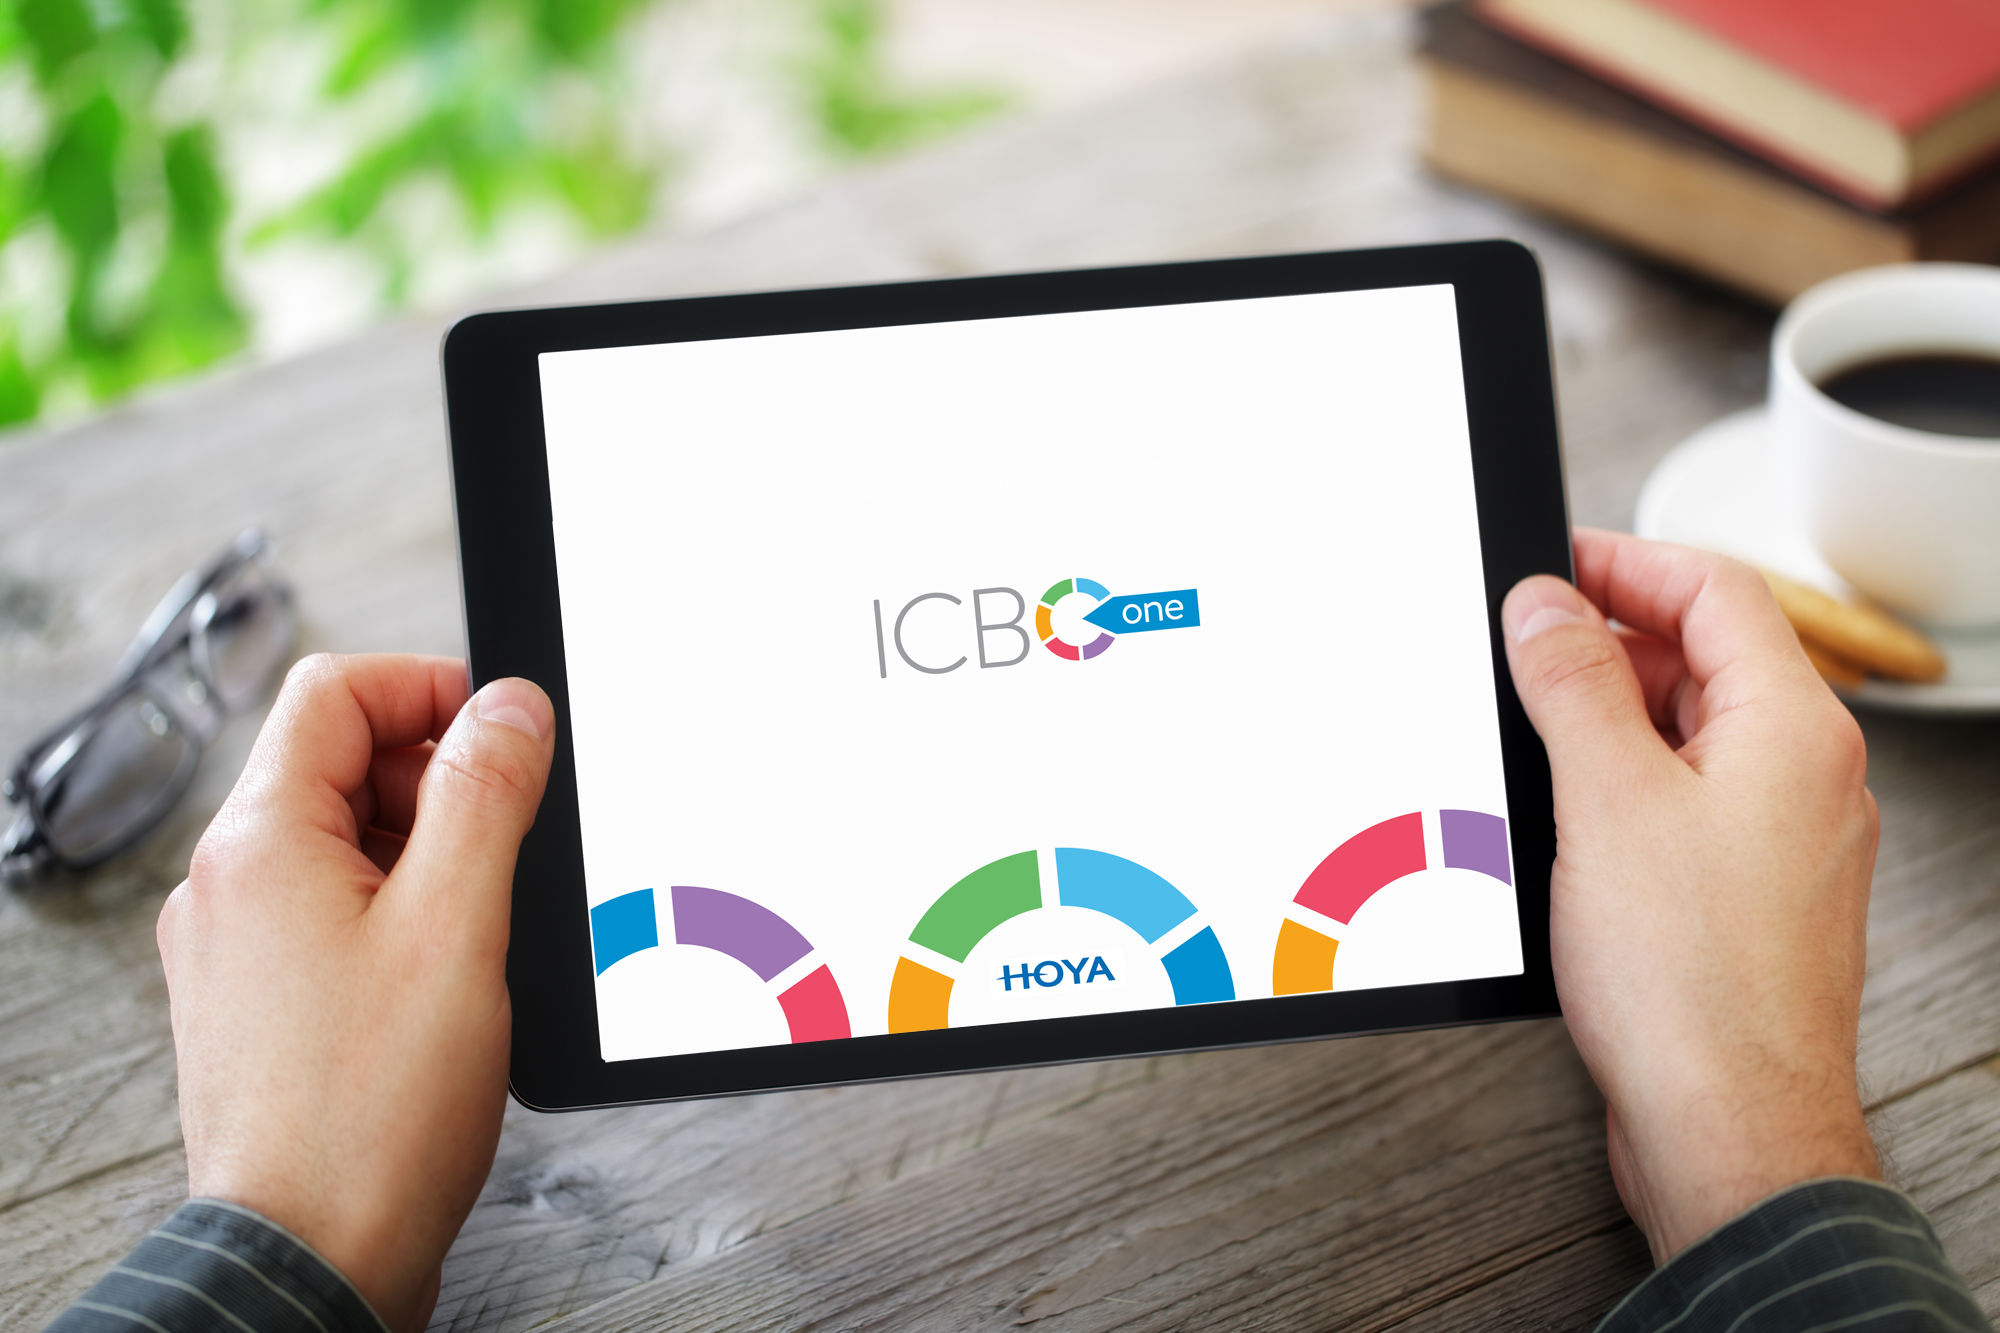 ICBO-ONE App